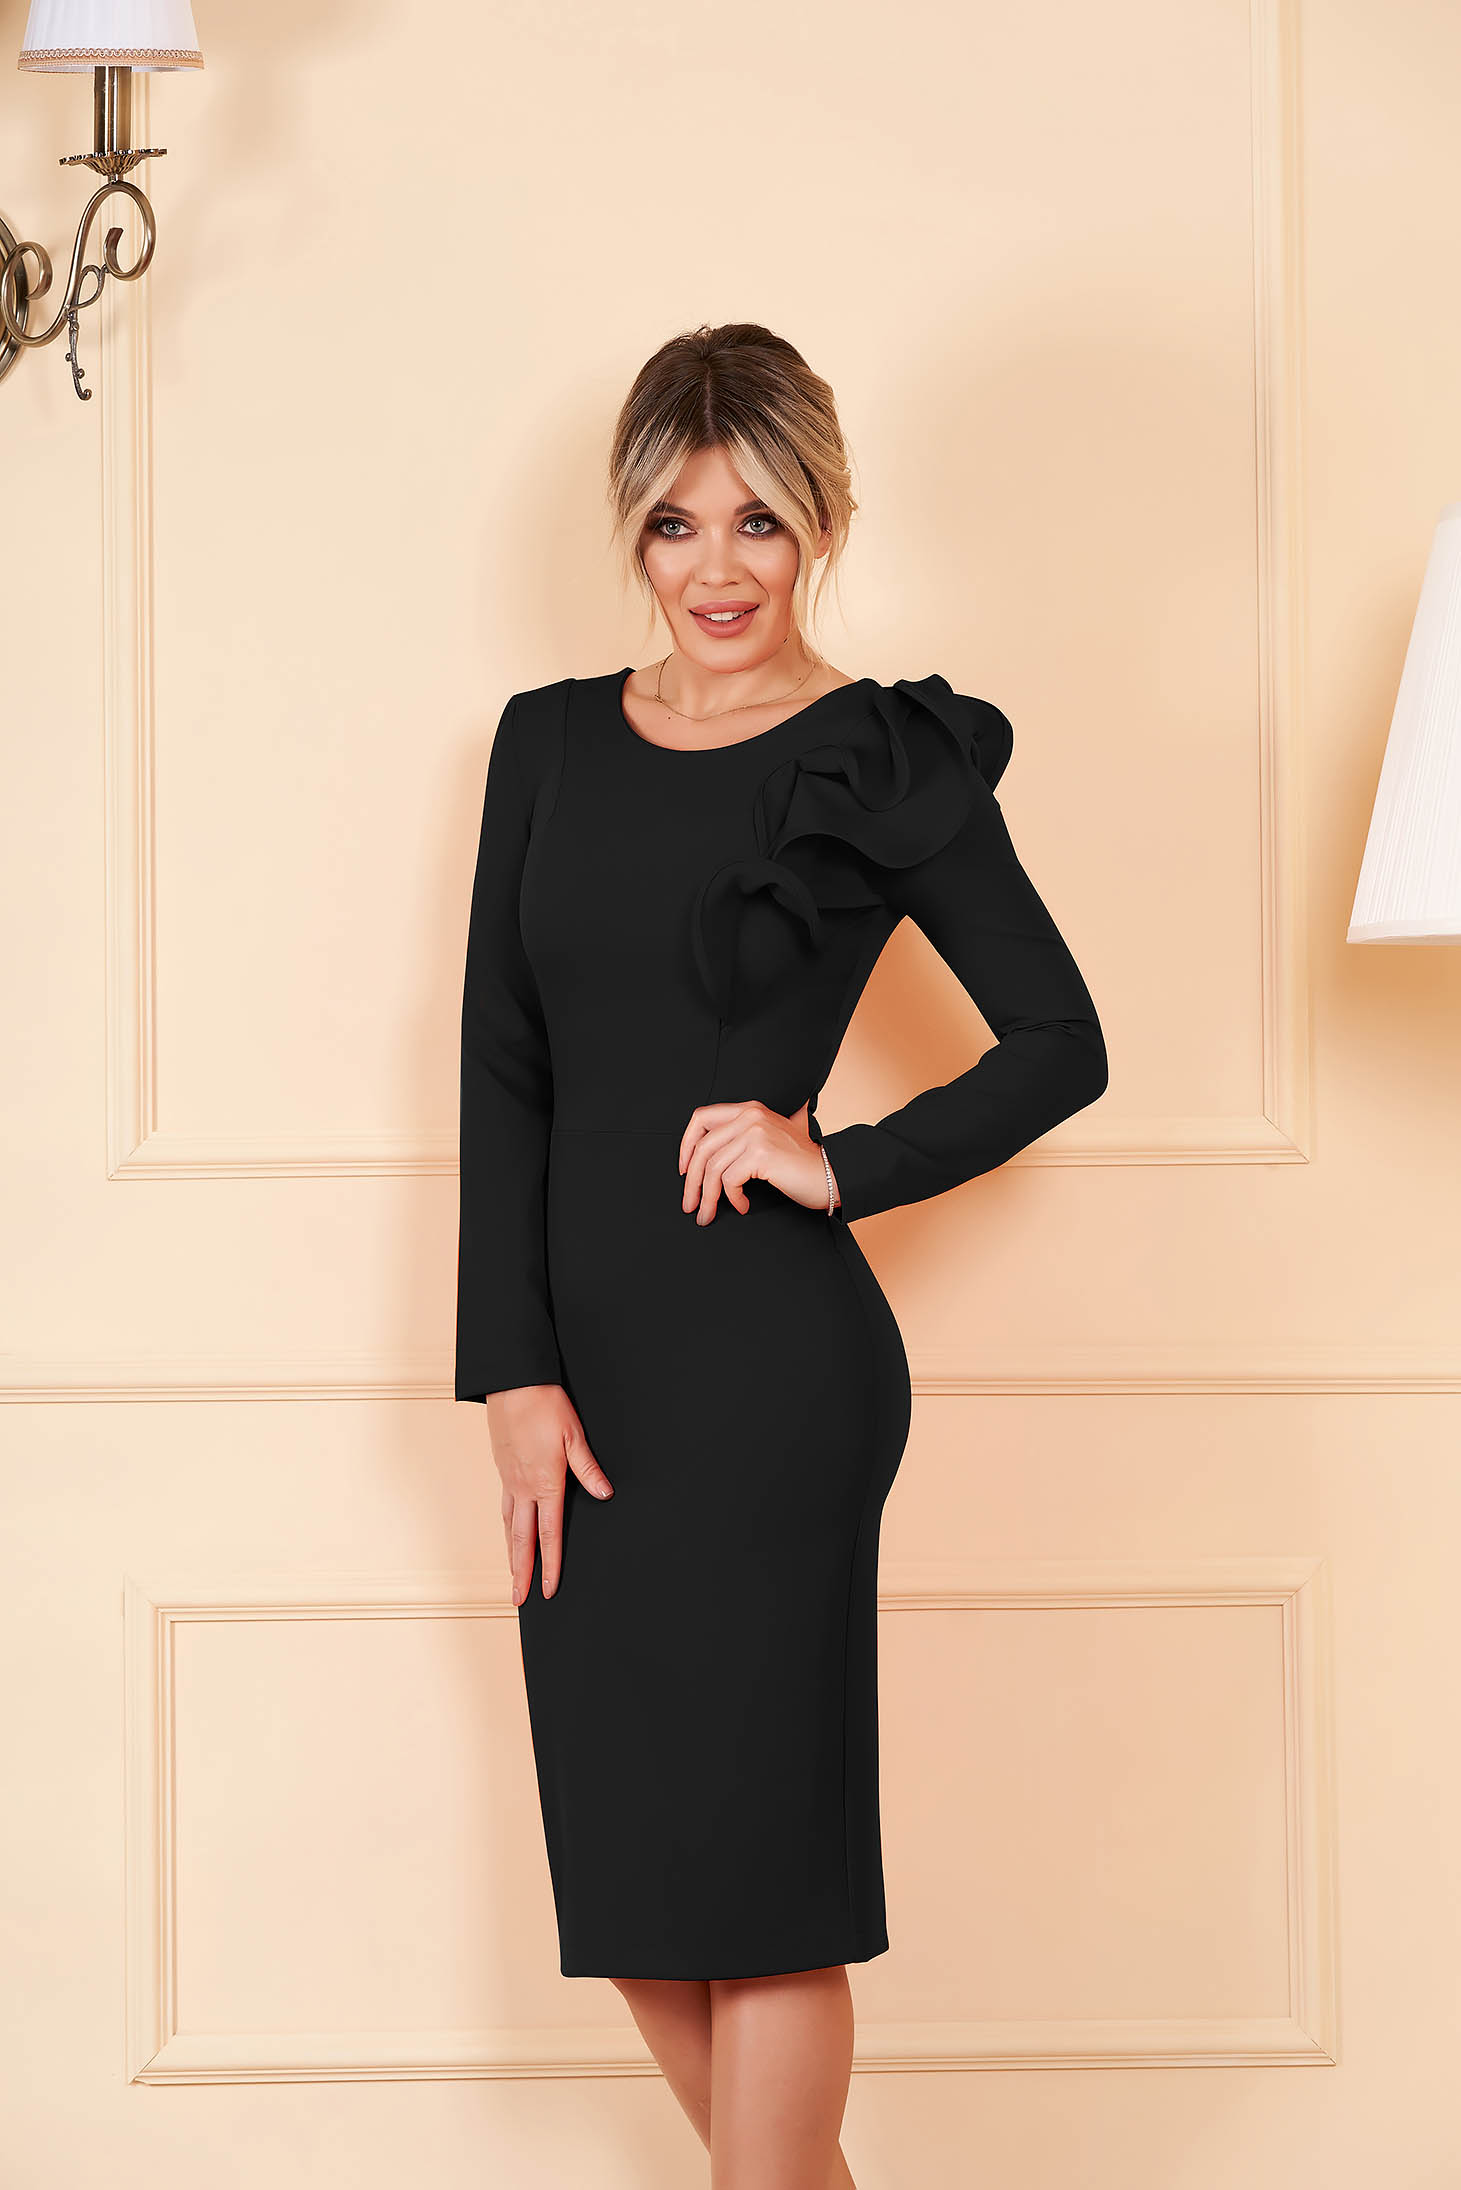 Dress StarShinerS black with tented cut slightly elastic fabric with ruffled sleeves